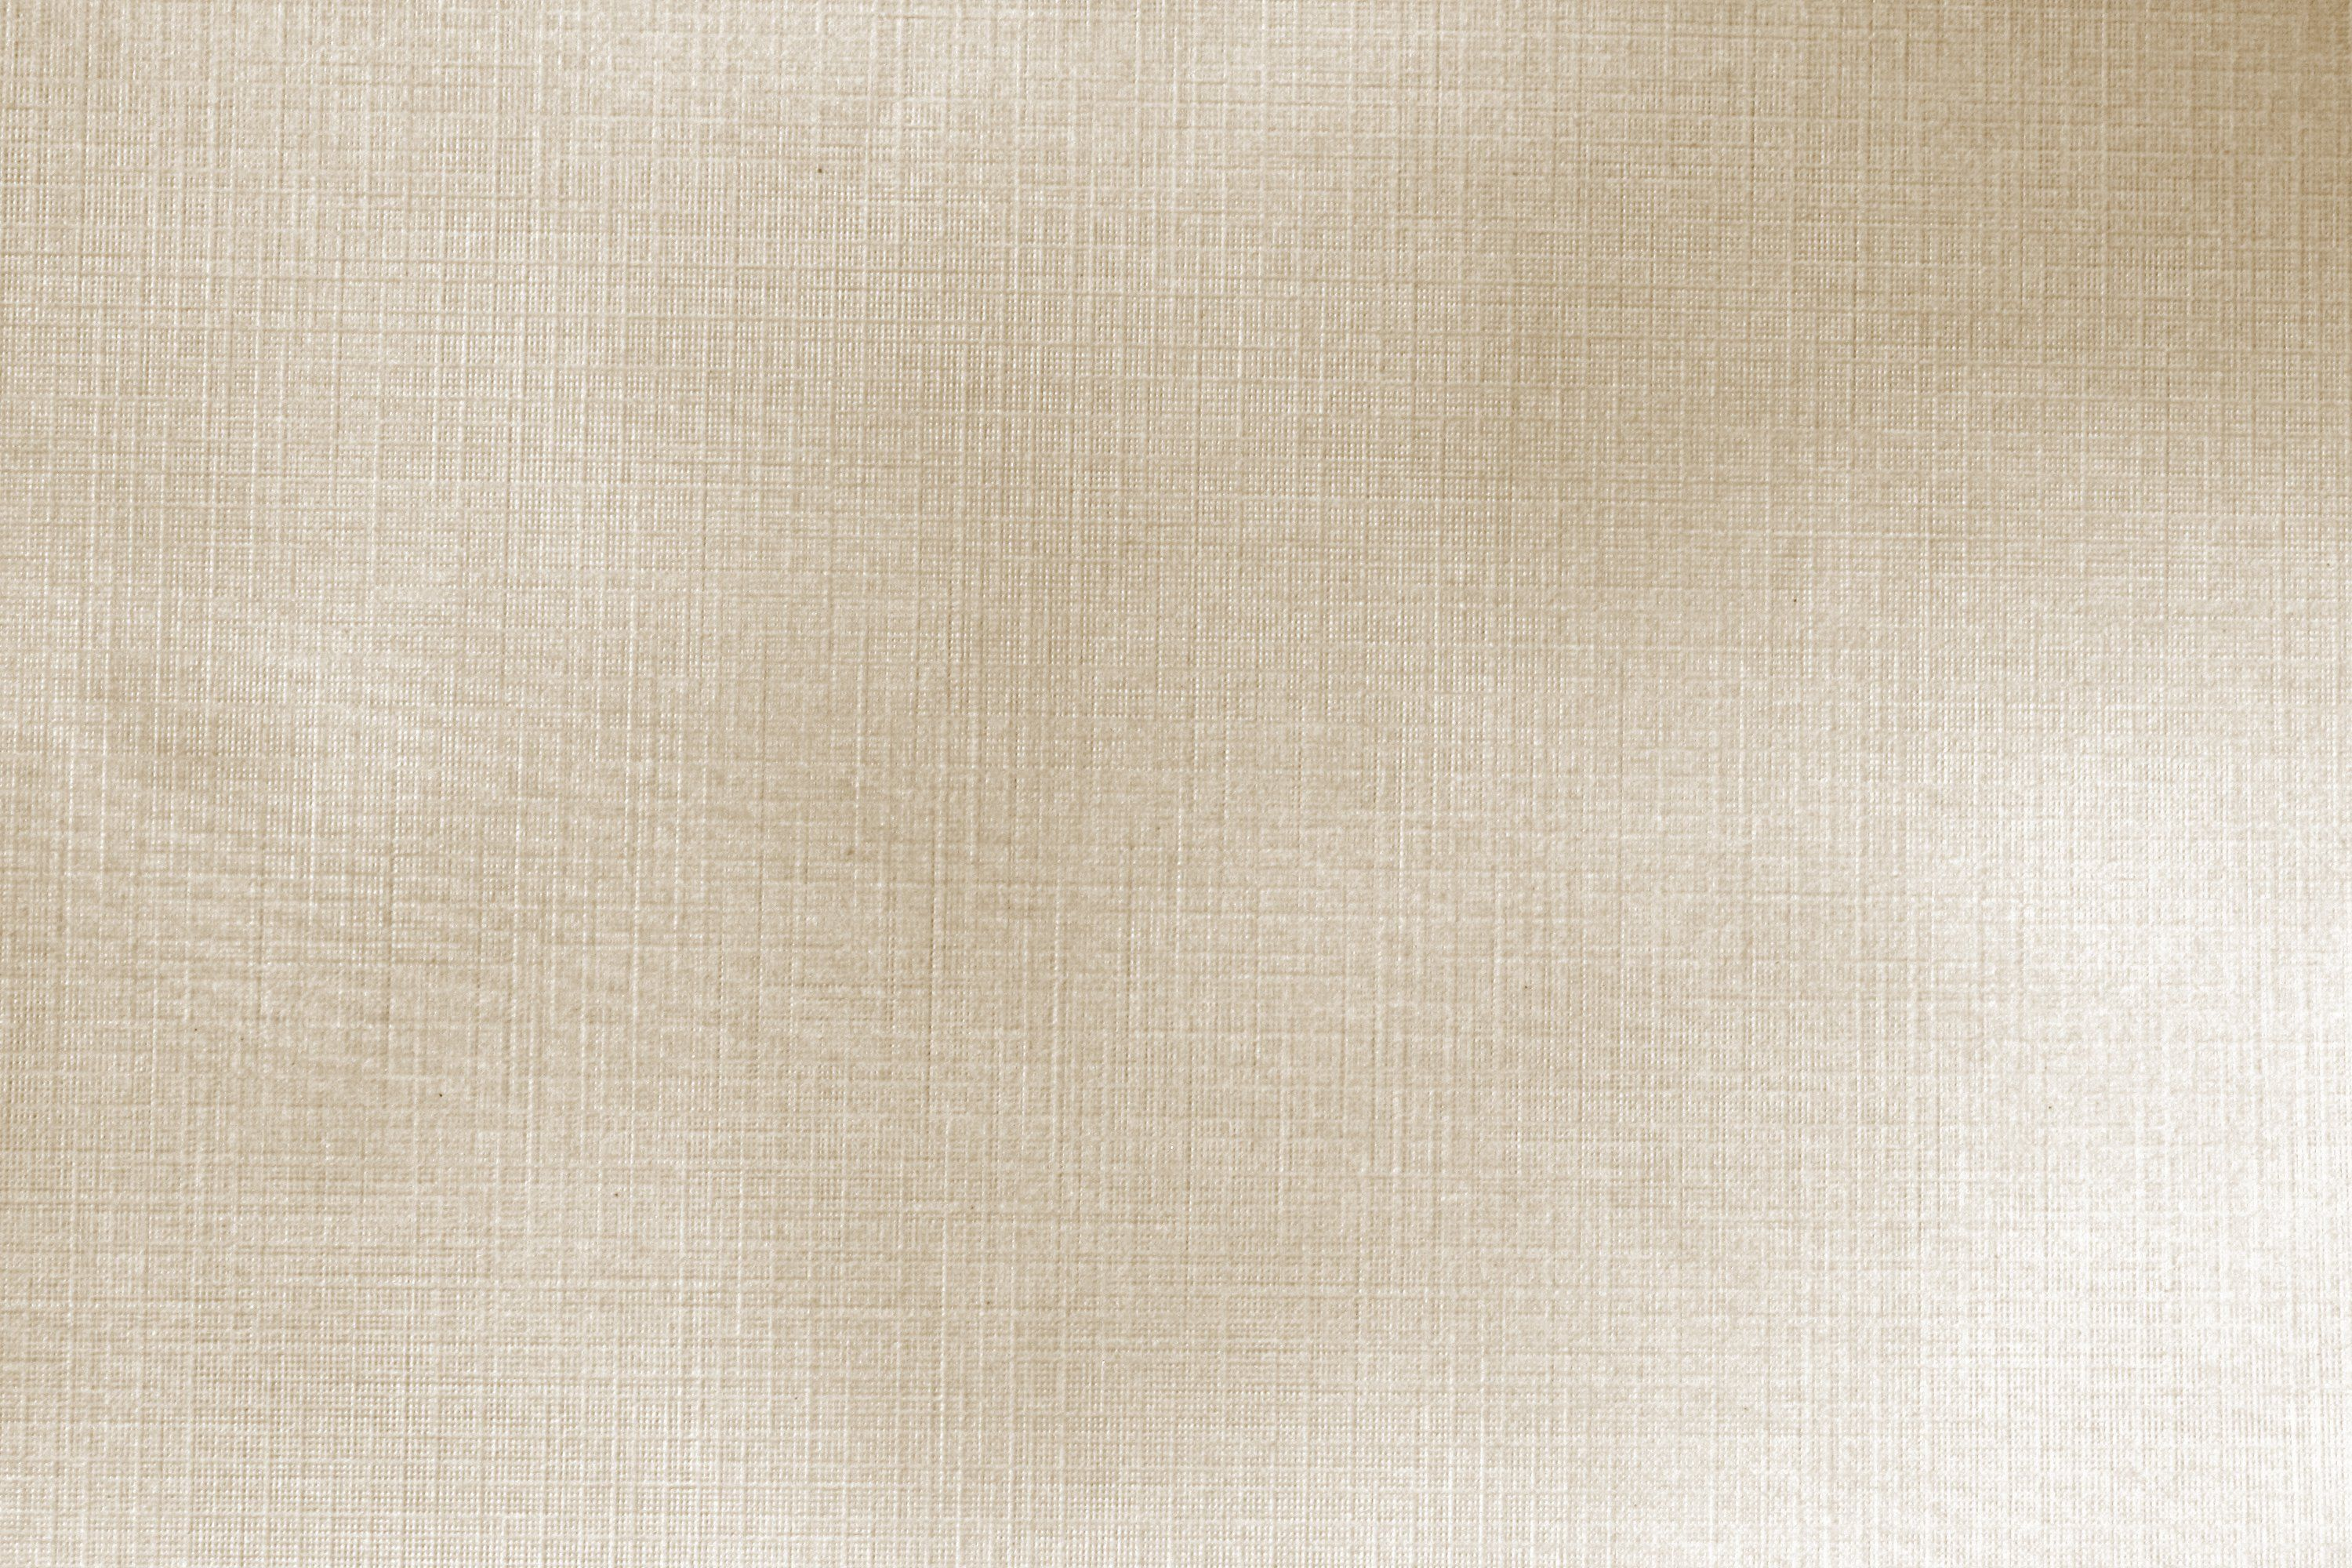 Linen Texture Album Design Pinterest